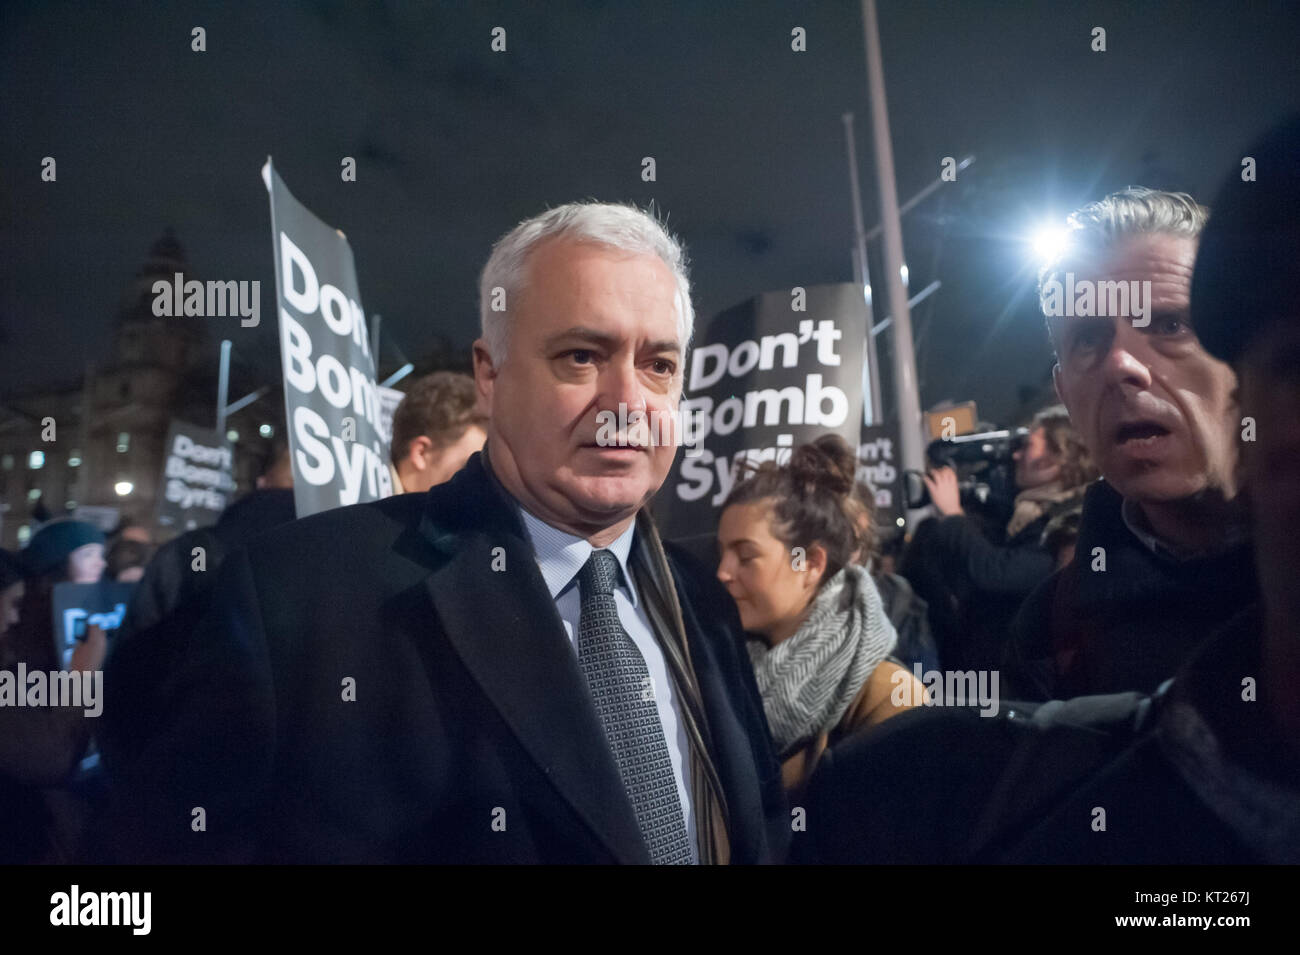 Andrew Murray and Chris Nineham of Stop the War at the emergency Don't Bomb Syria protest by Stop the War on the Stock Photo